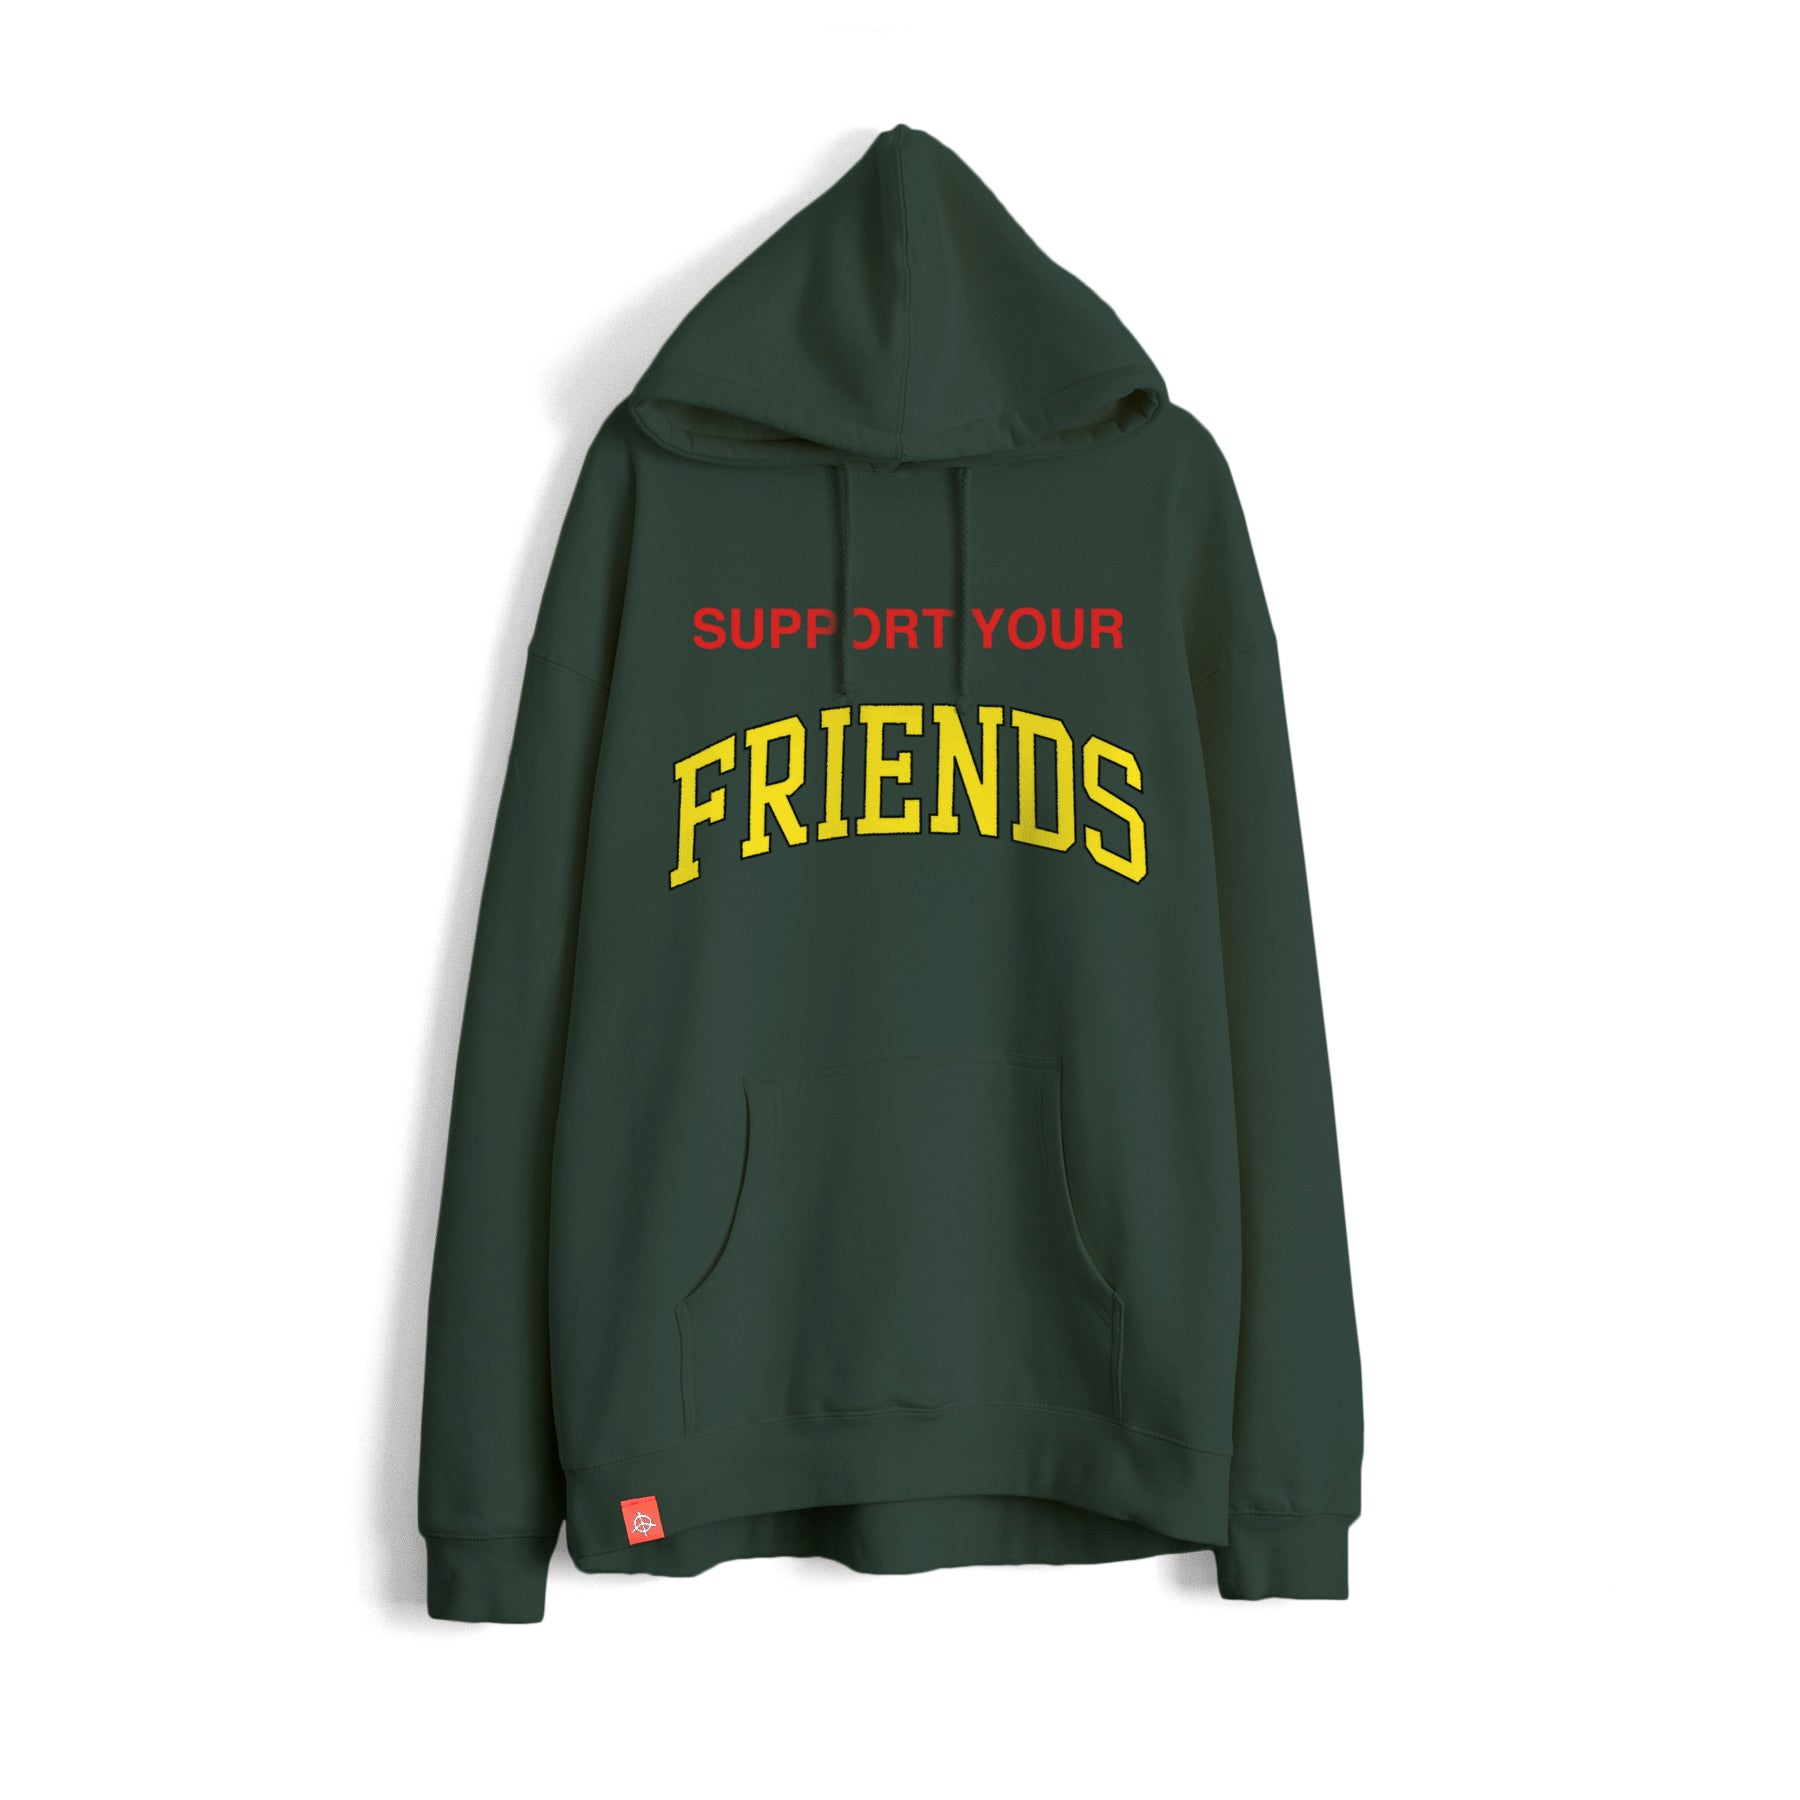 SUPPORT YOUR FRIENDS HOODIE - LEAFY GREEN